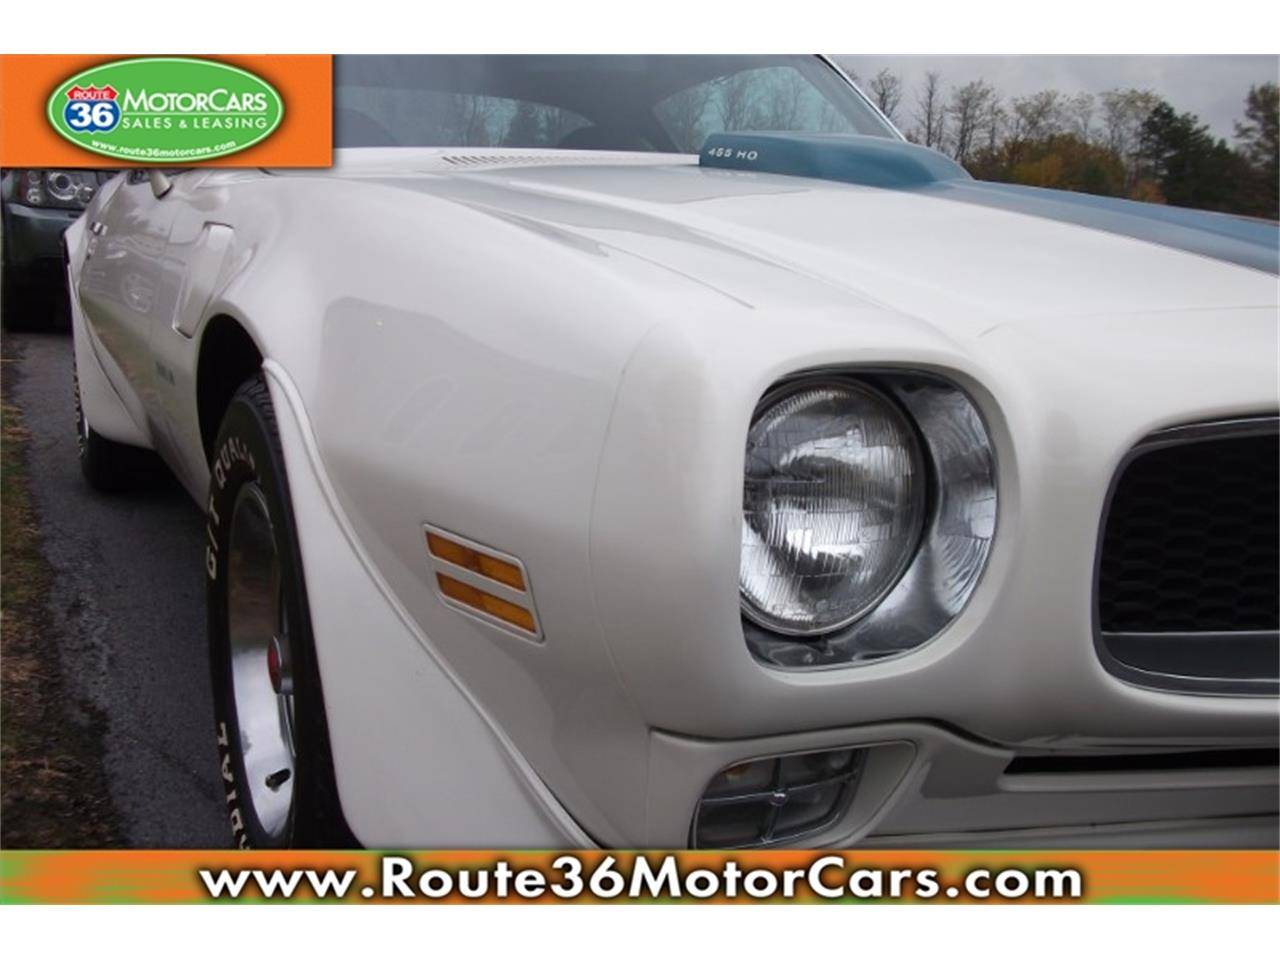 Large Picture of Classic '72 Pontiac Firebird - $54,975.00 Offered by Route 36 Motor Cars - IKH6